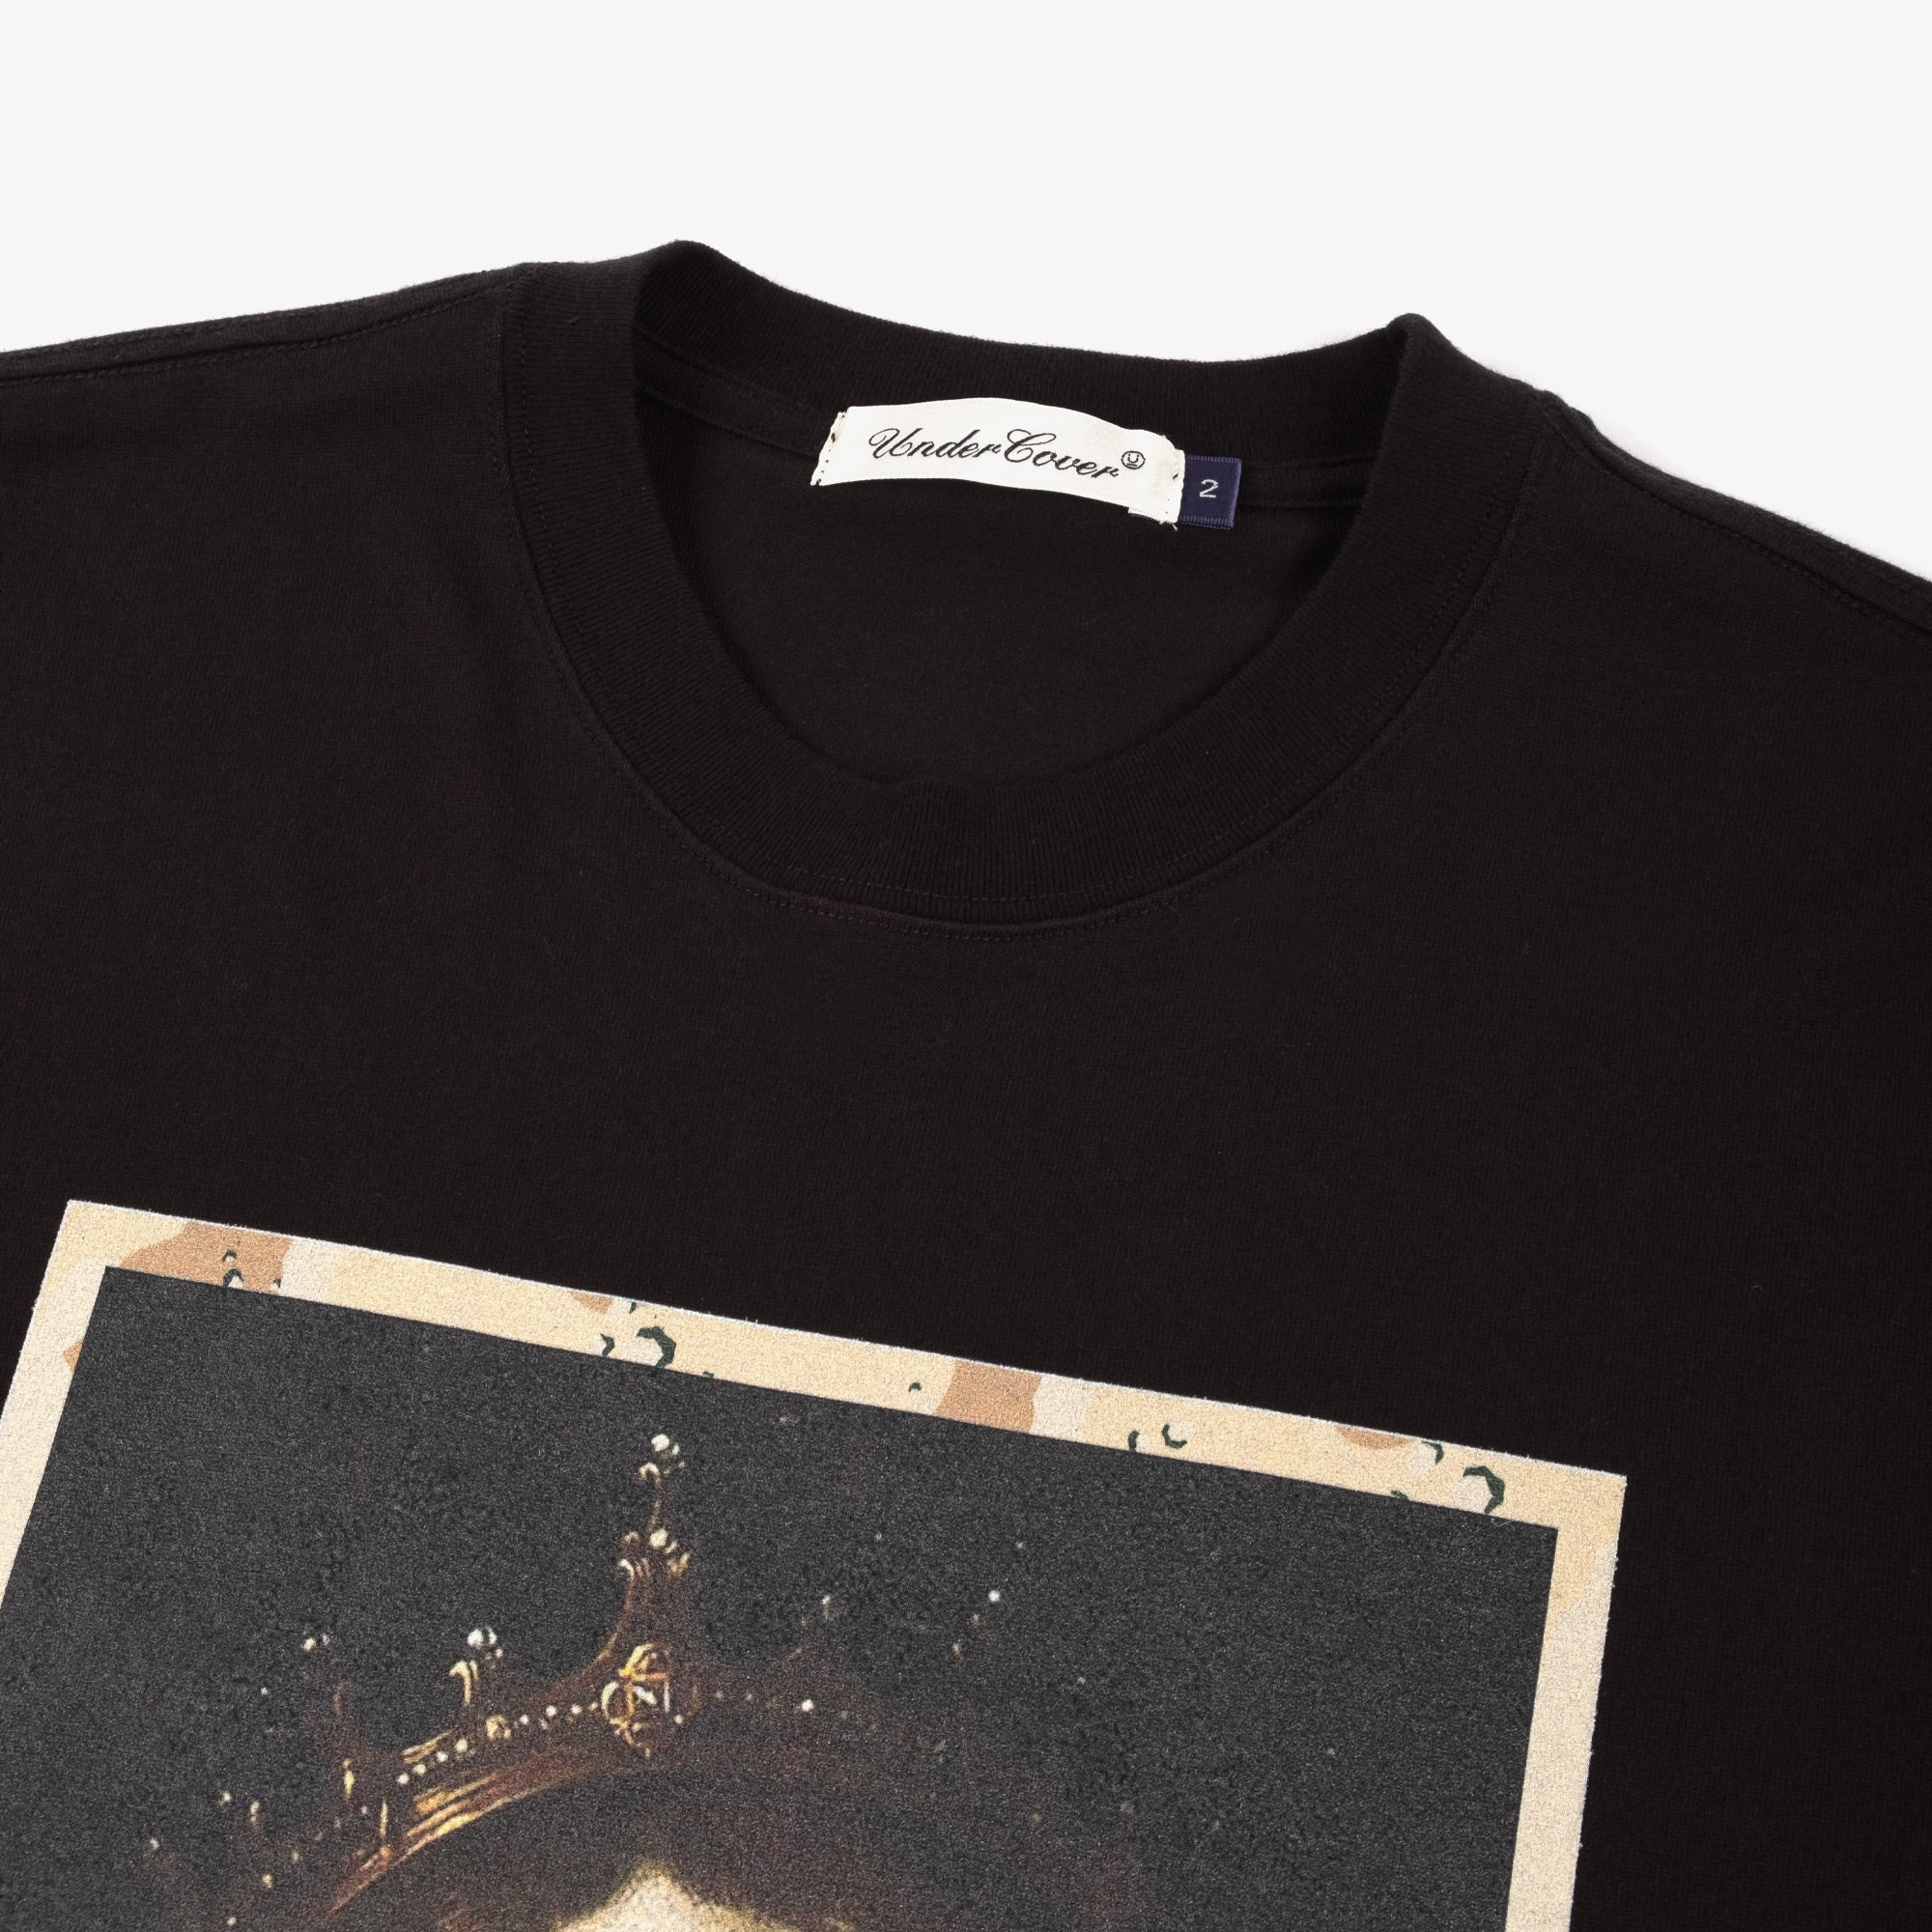 Undercover Two Faces Tee UC2A3804 - Black 2